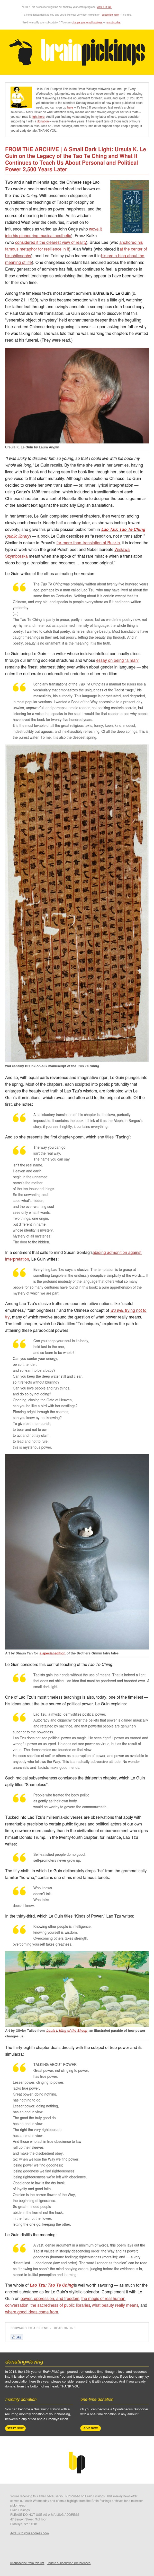 Ursula K. Le Guin on the legacy of the Tao Te Ching and what it continues to teach us about personal and political power 2,500 years later